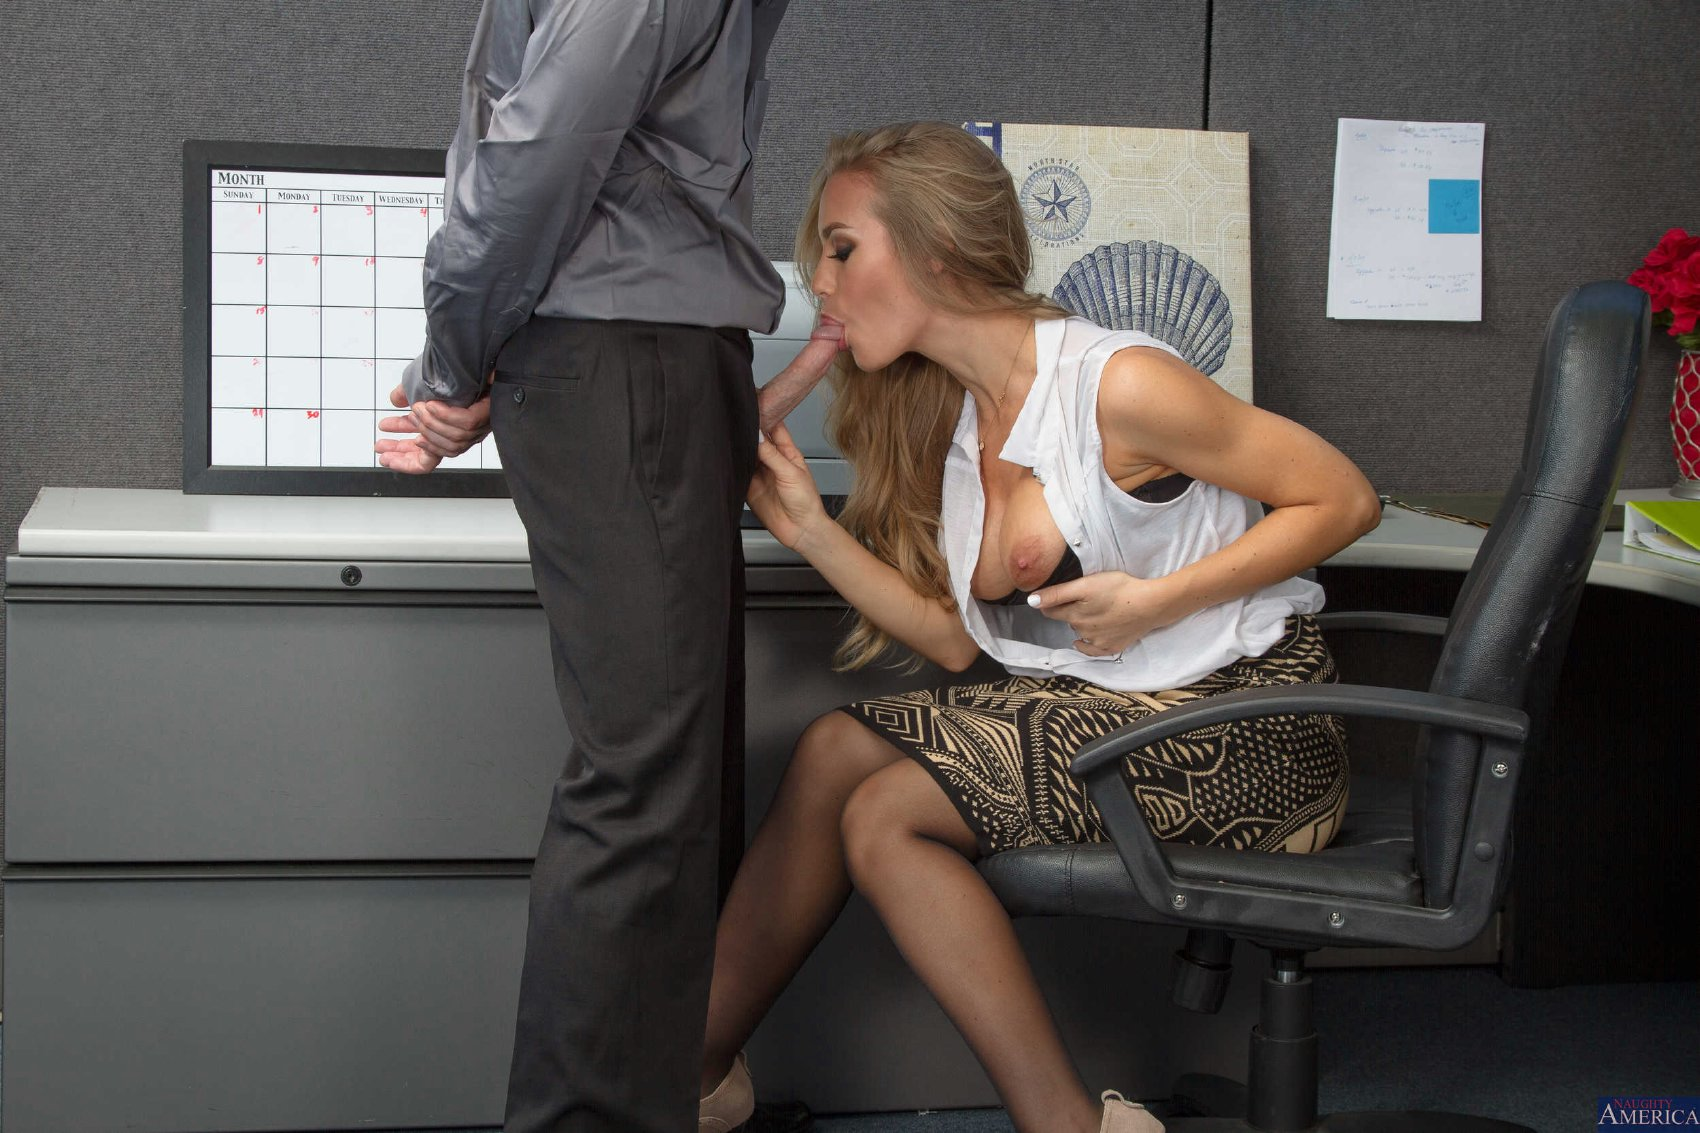 Having sex with a co worker